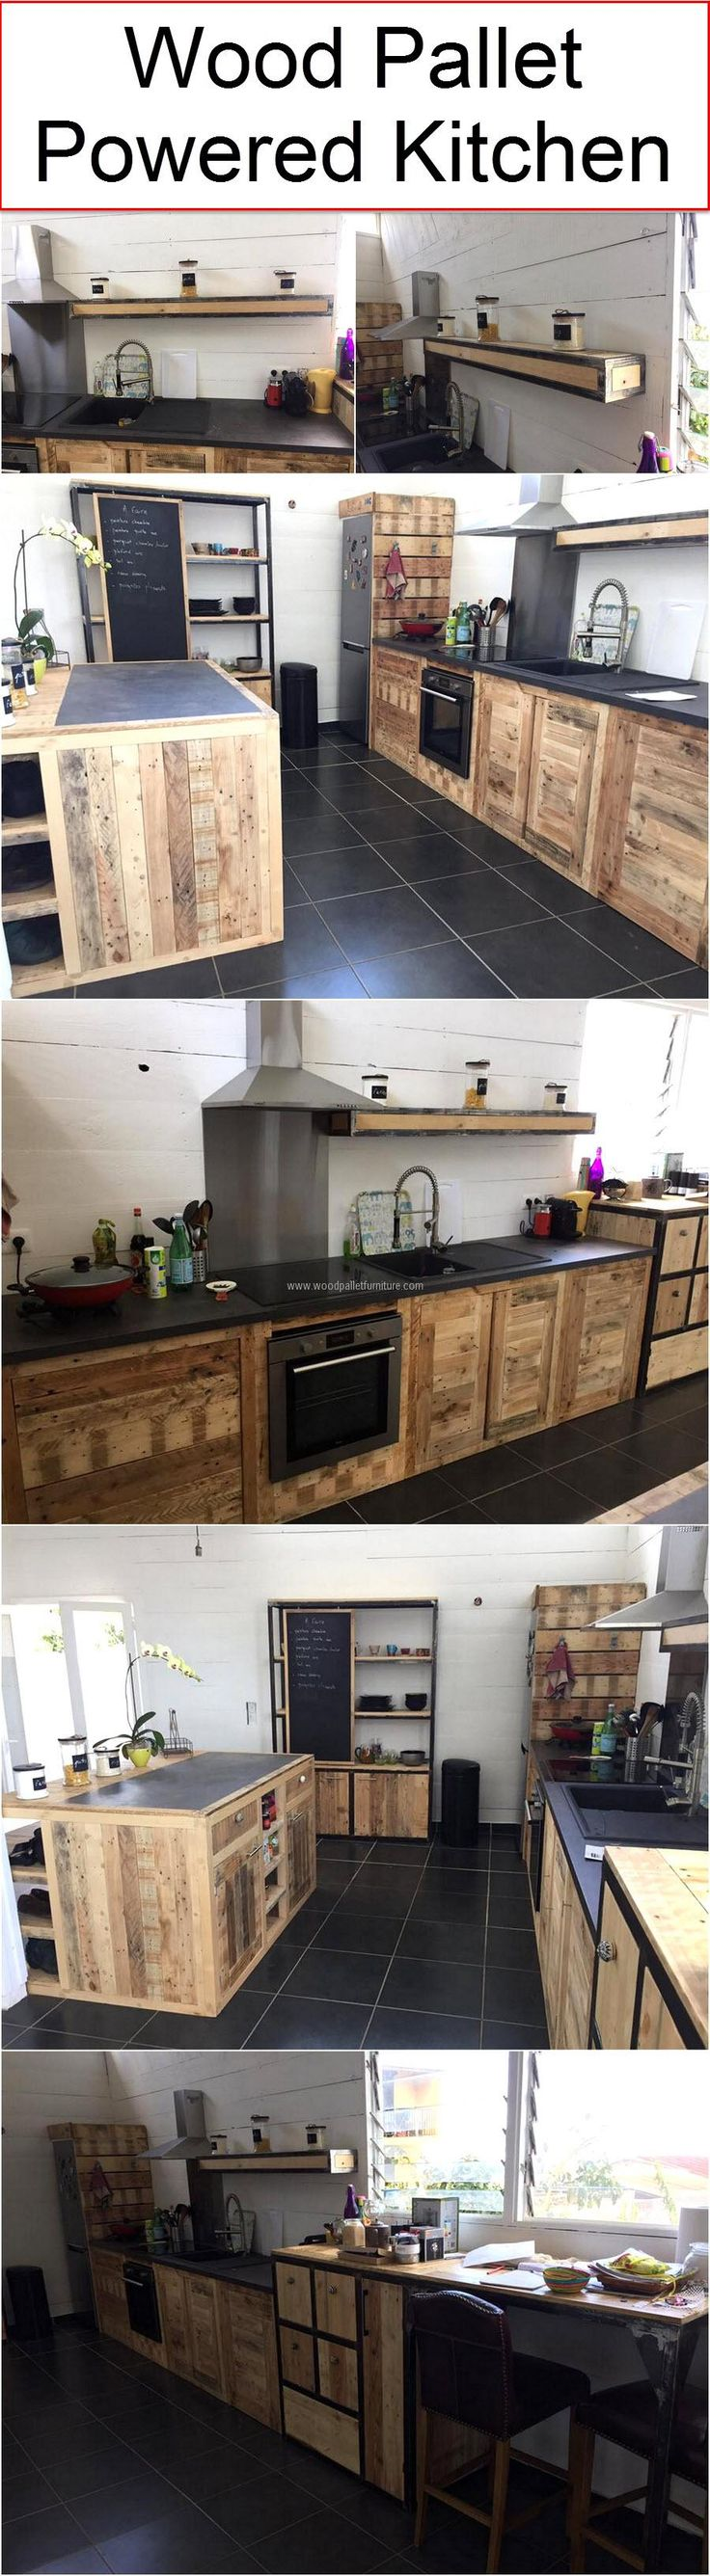 Interior Fittings For Kitchen Cupboards 17 Best Ideas About Pallet Kitchen Cabinets On Pinterest Rustic